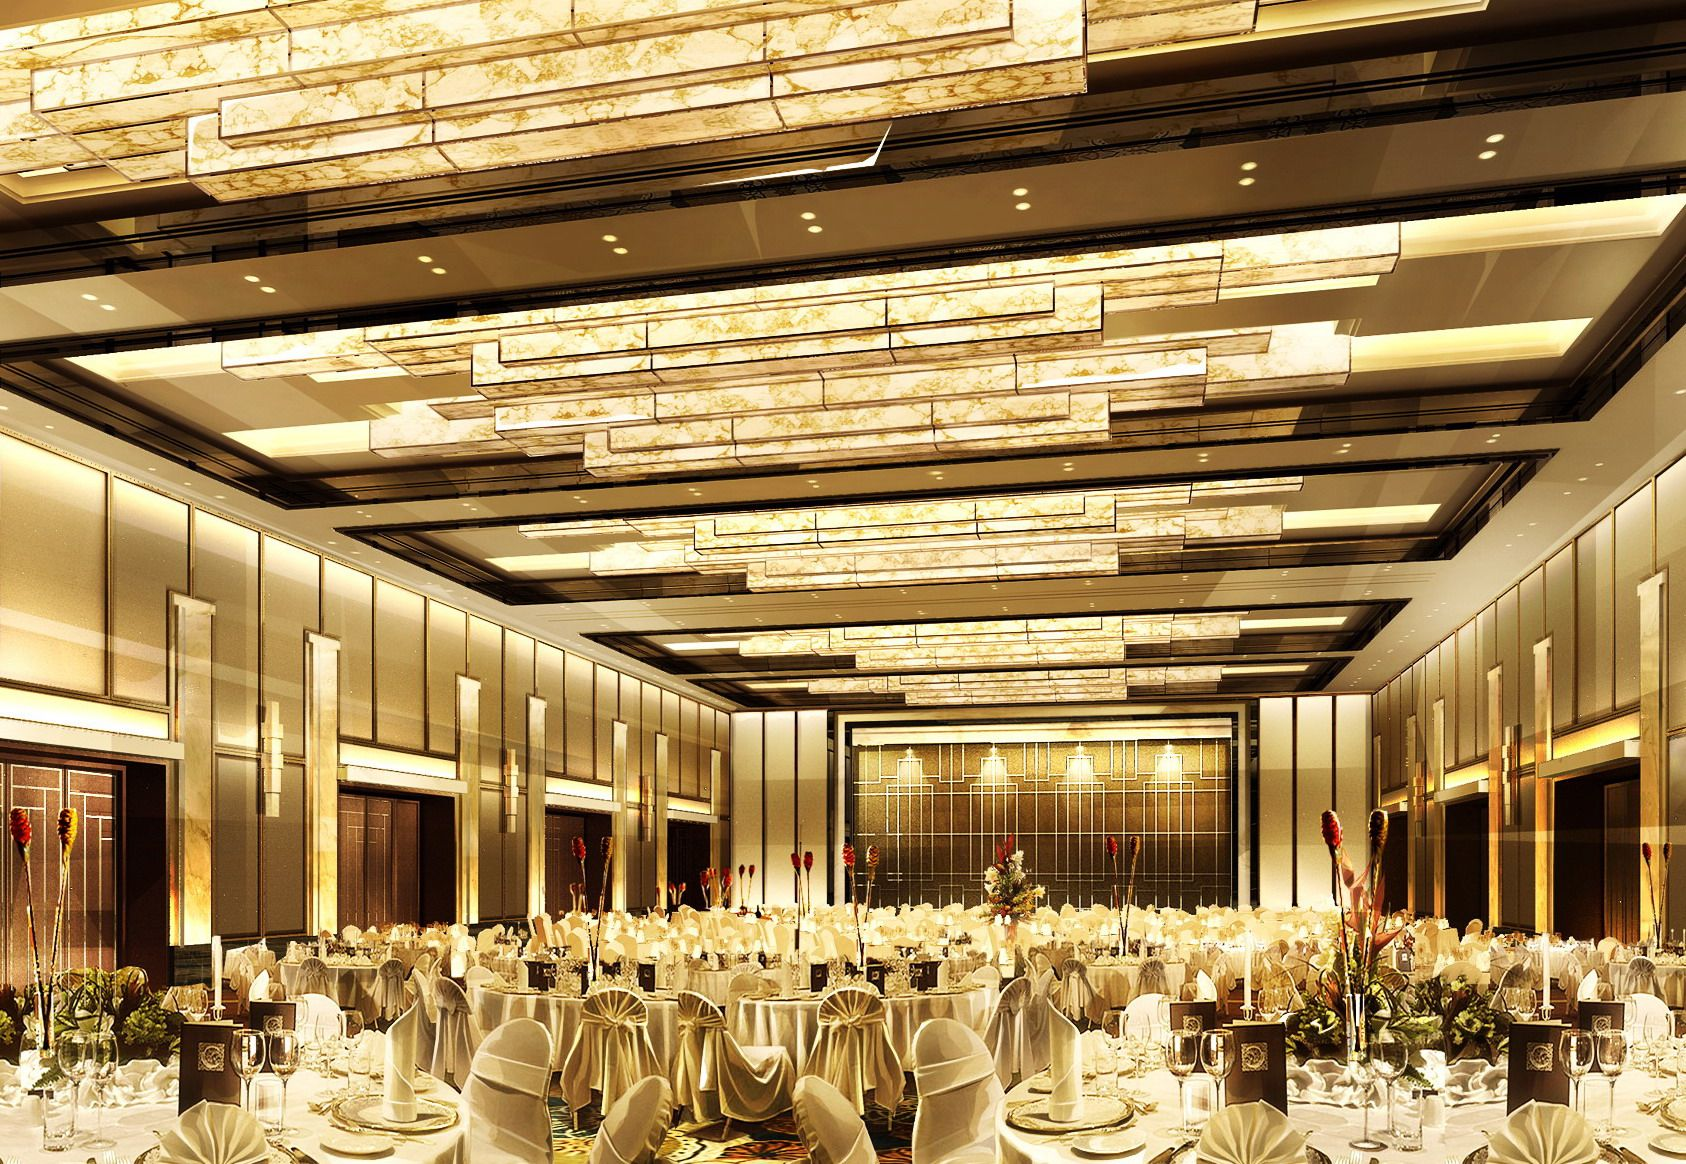 Eaton Luxe Grand Ballroom Rendering With Images Ballroom